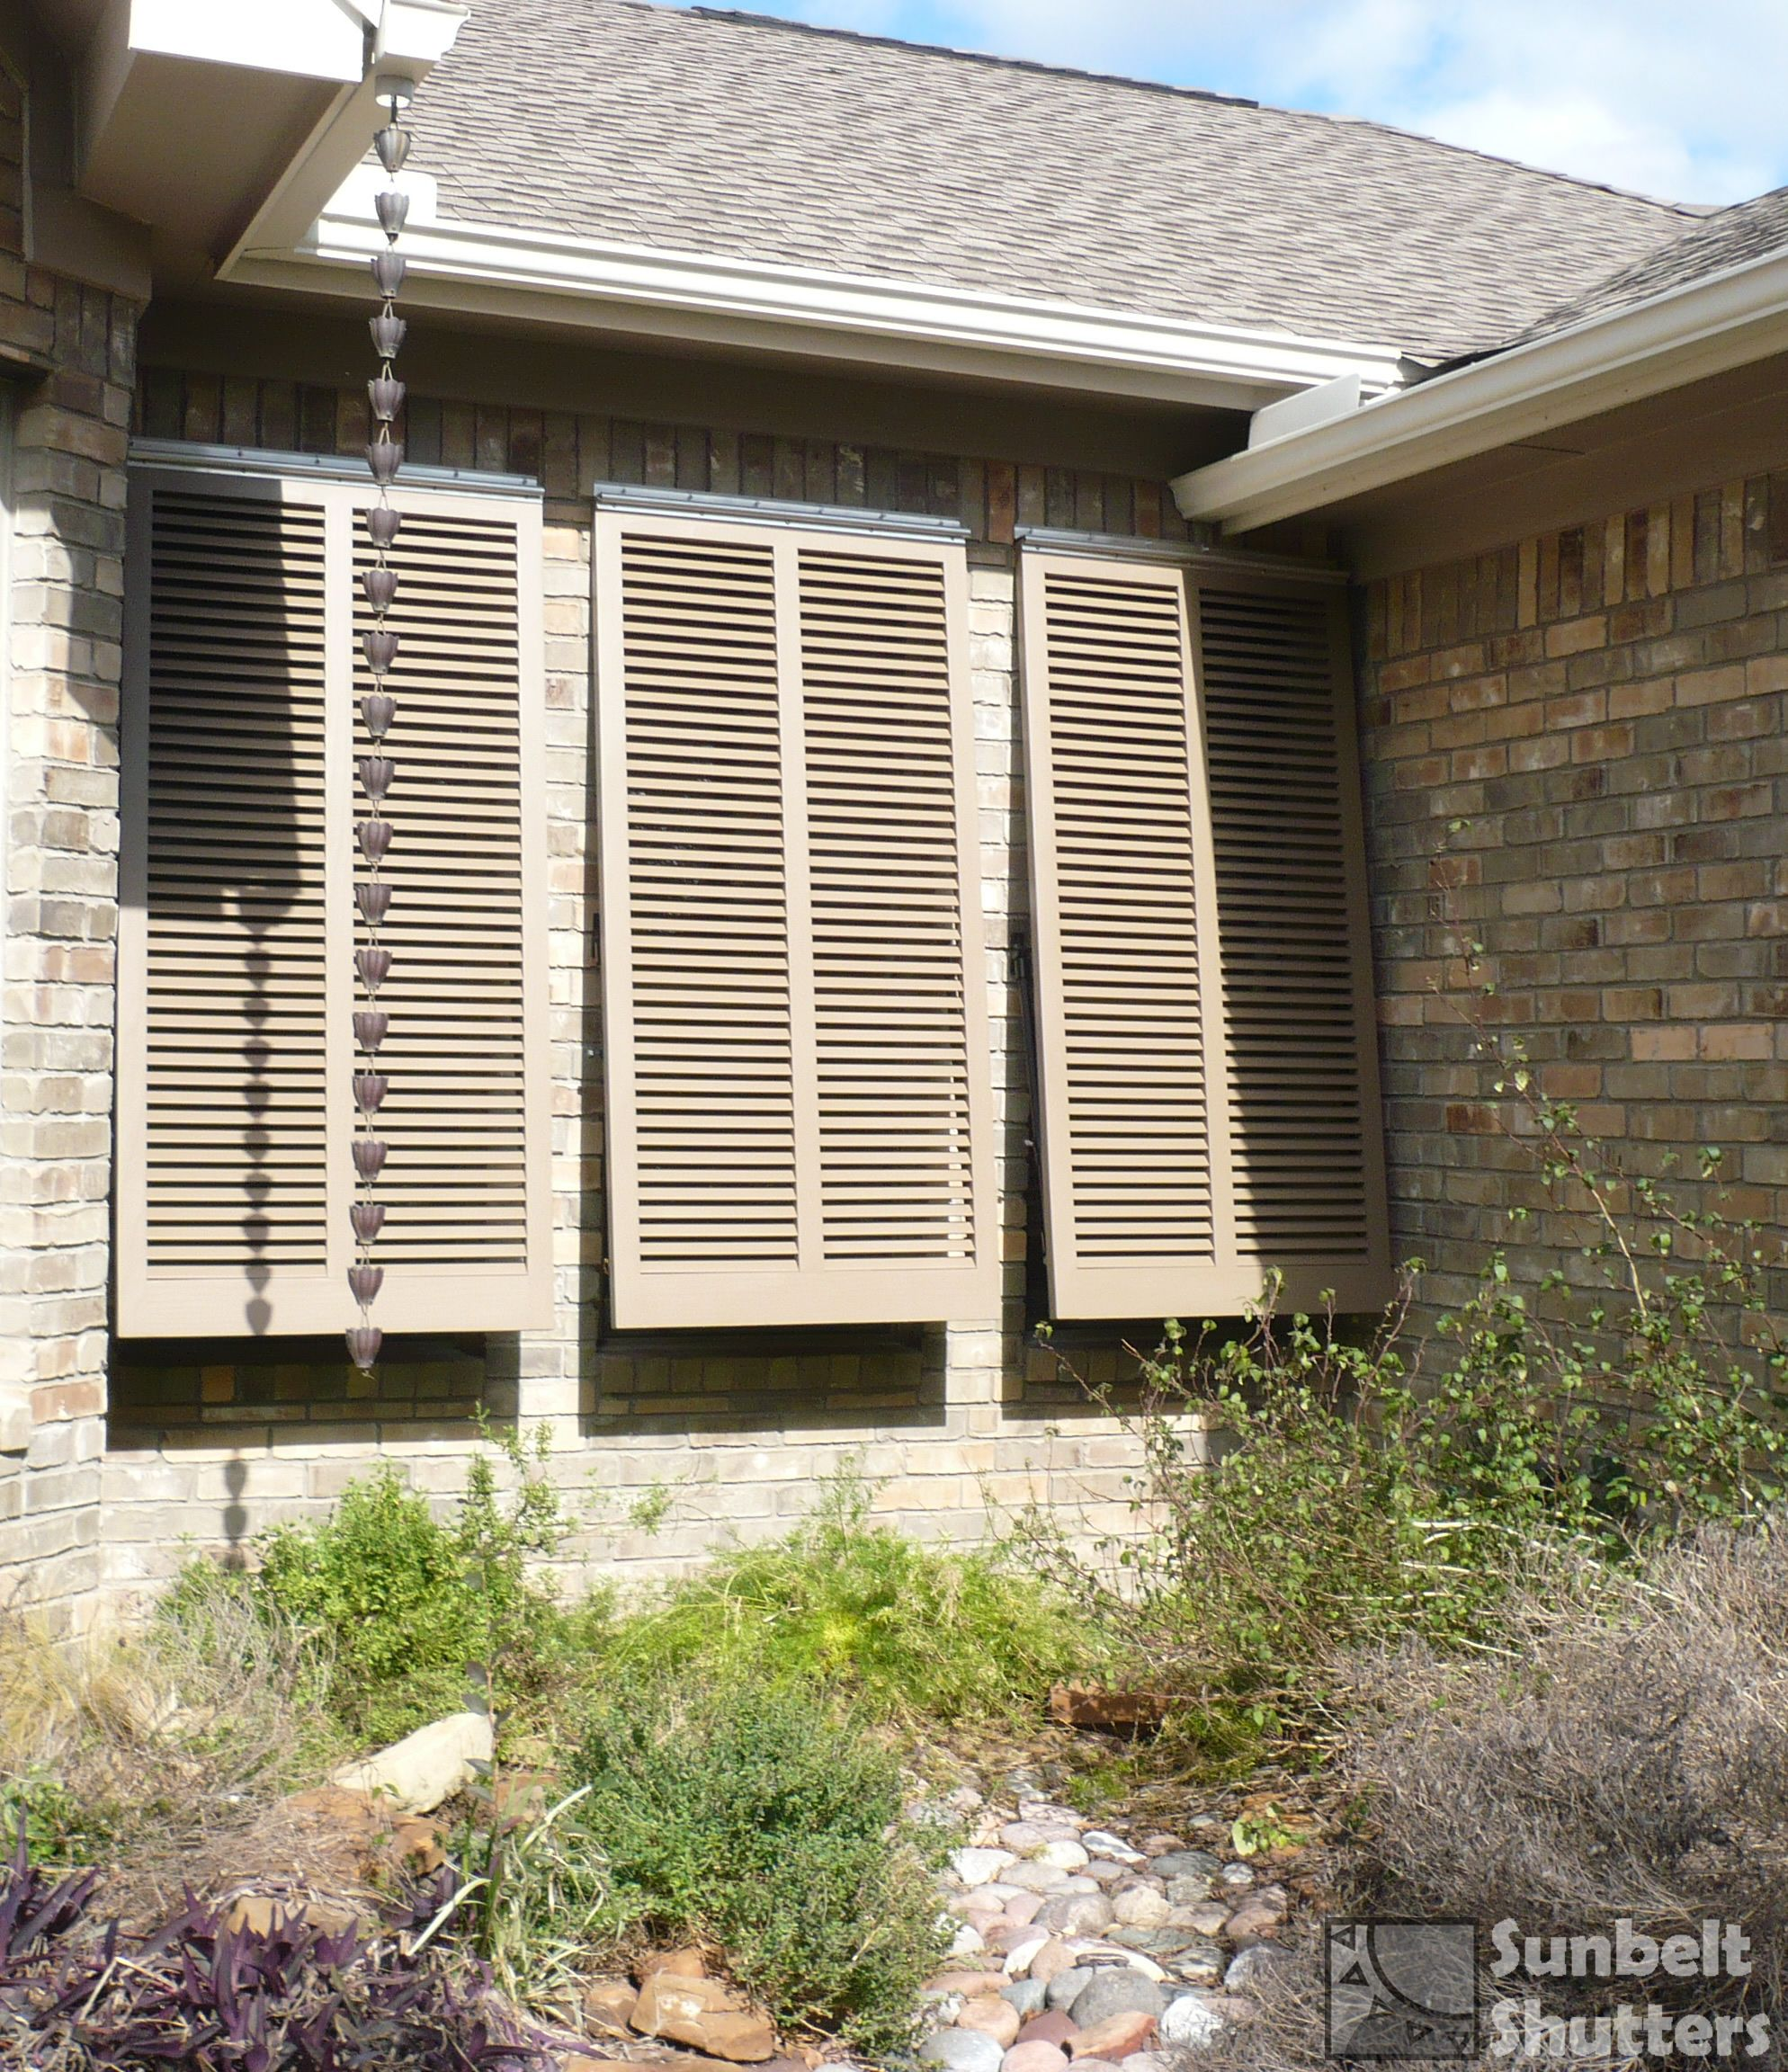 Cedar bahamas shutters with open louver style louvers at a 45 degree angle installed with for Exterior louvered window shutters